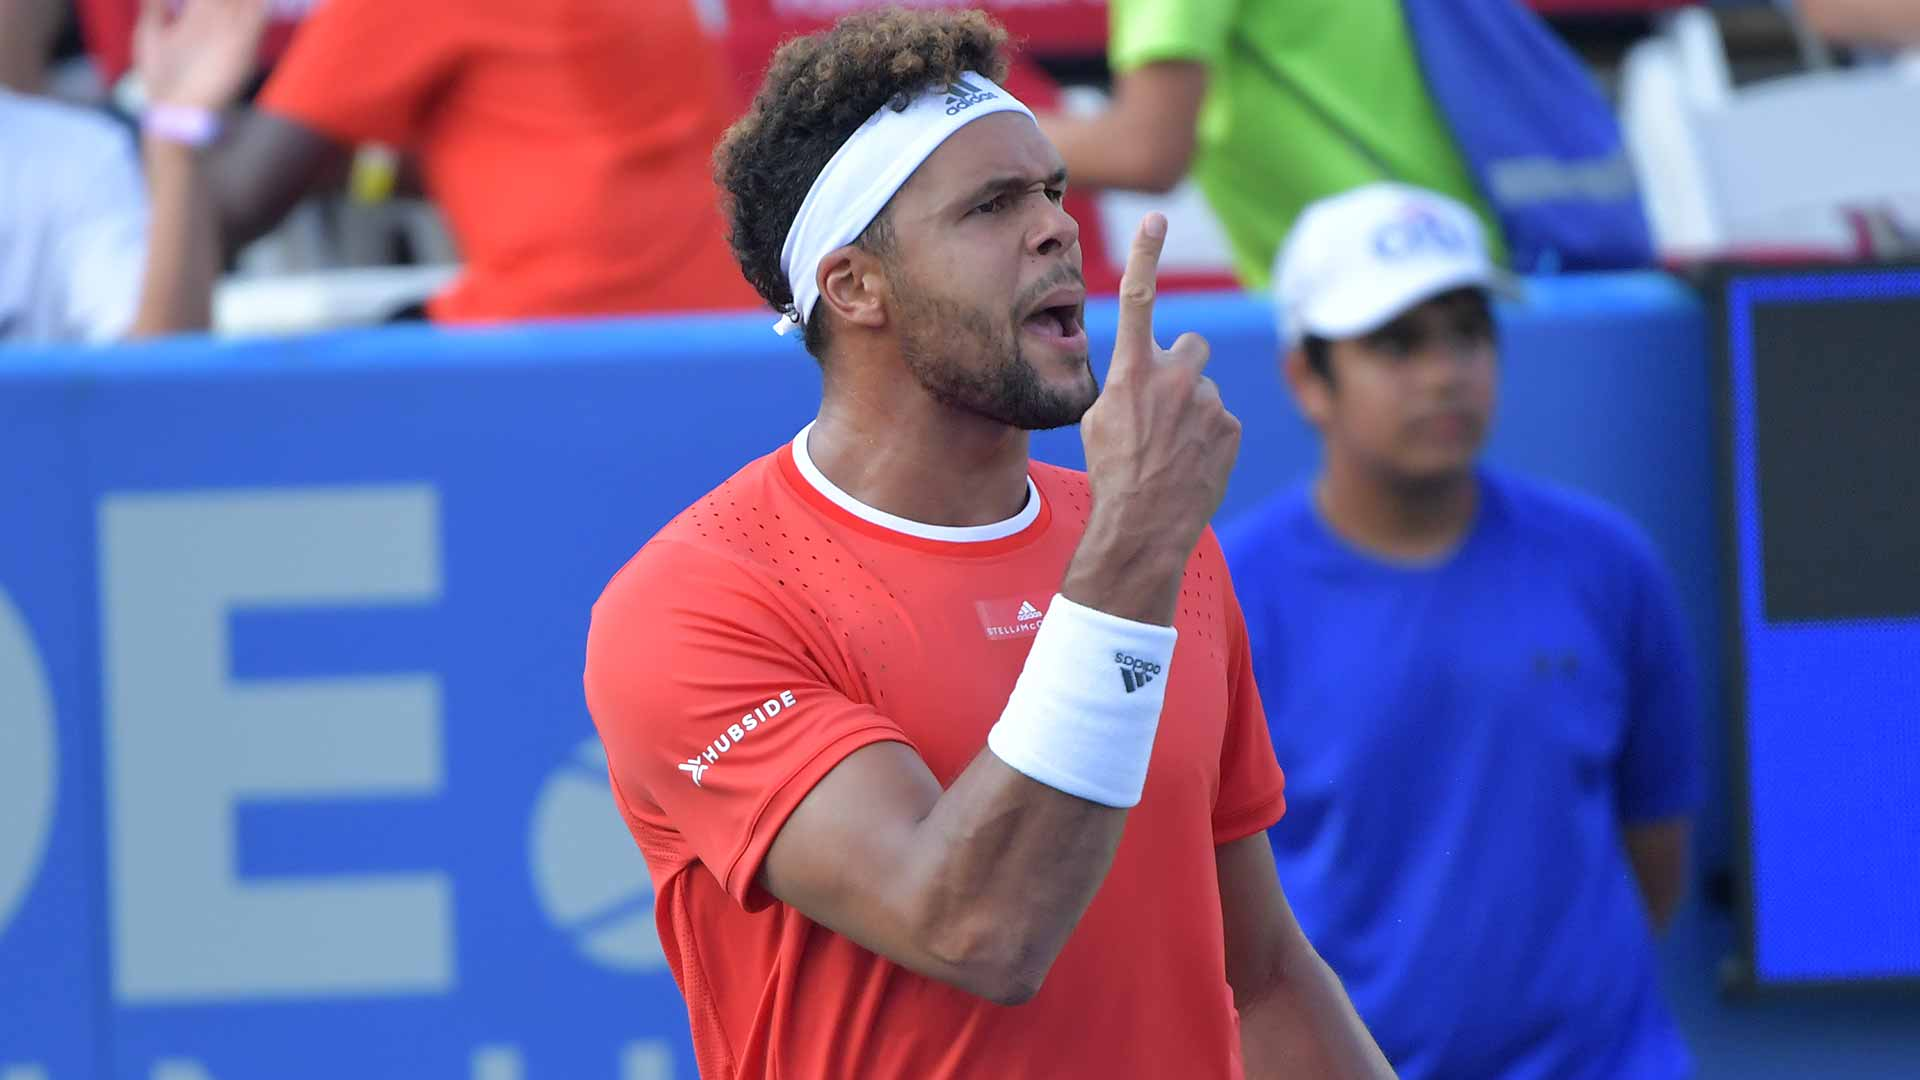 Jo-Wilfried Tsonga wins his first match since Wimbledon on Monday at the CIti Open in Washington, D.C.